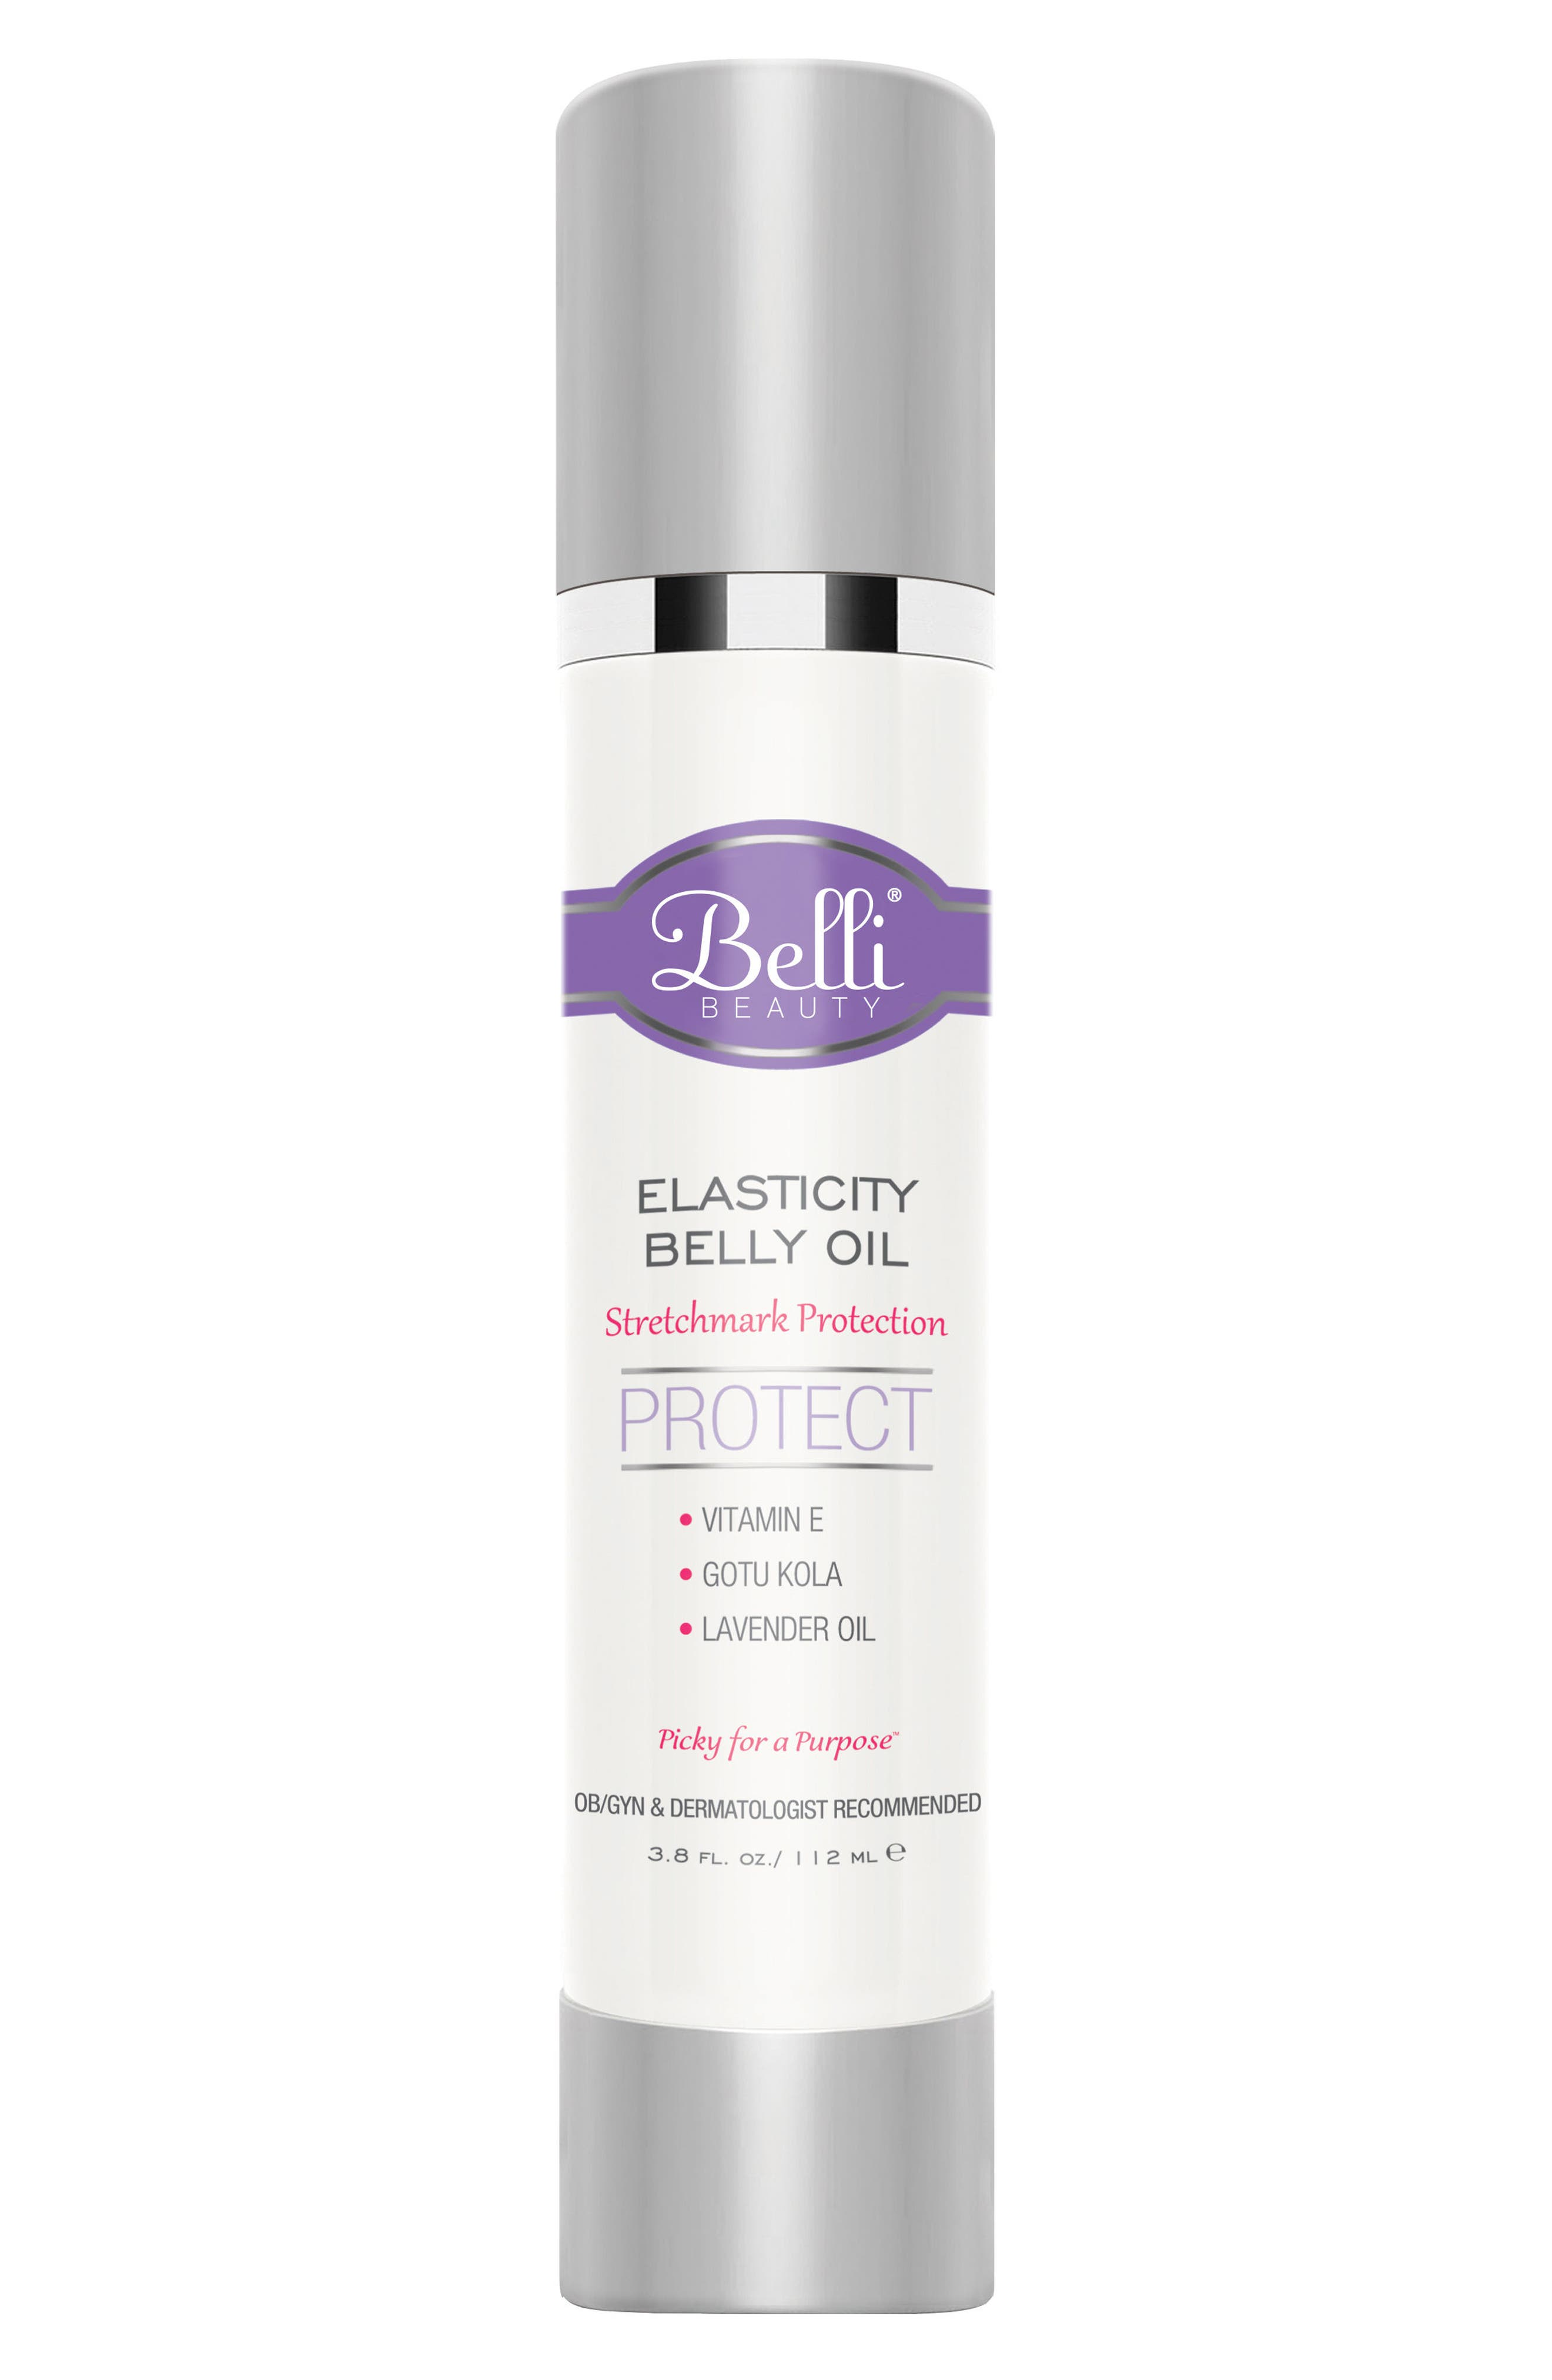 'Elasticity' Belly Oil for Stretch Mark Protection,                             Alternate thumbnail 2, color,                             WHITE